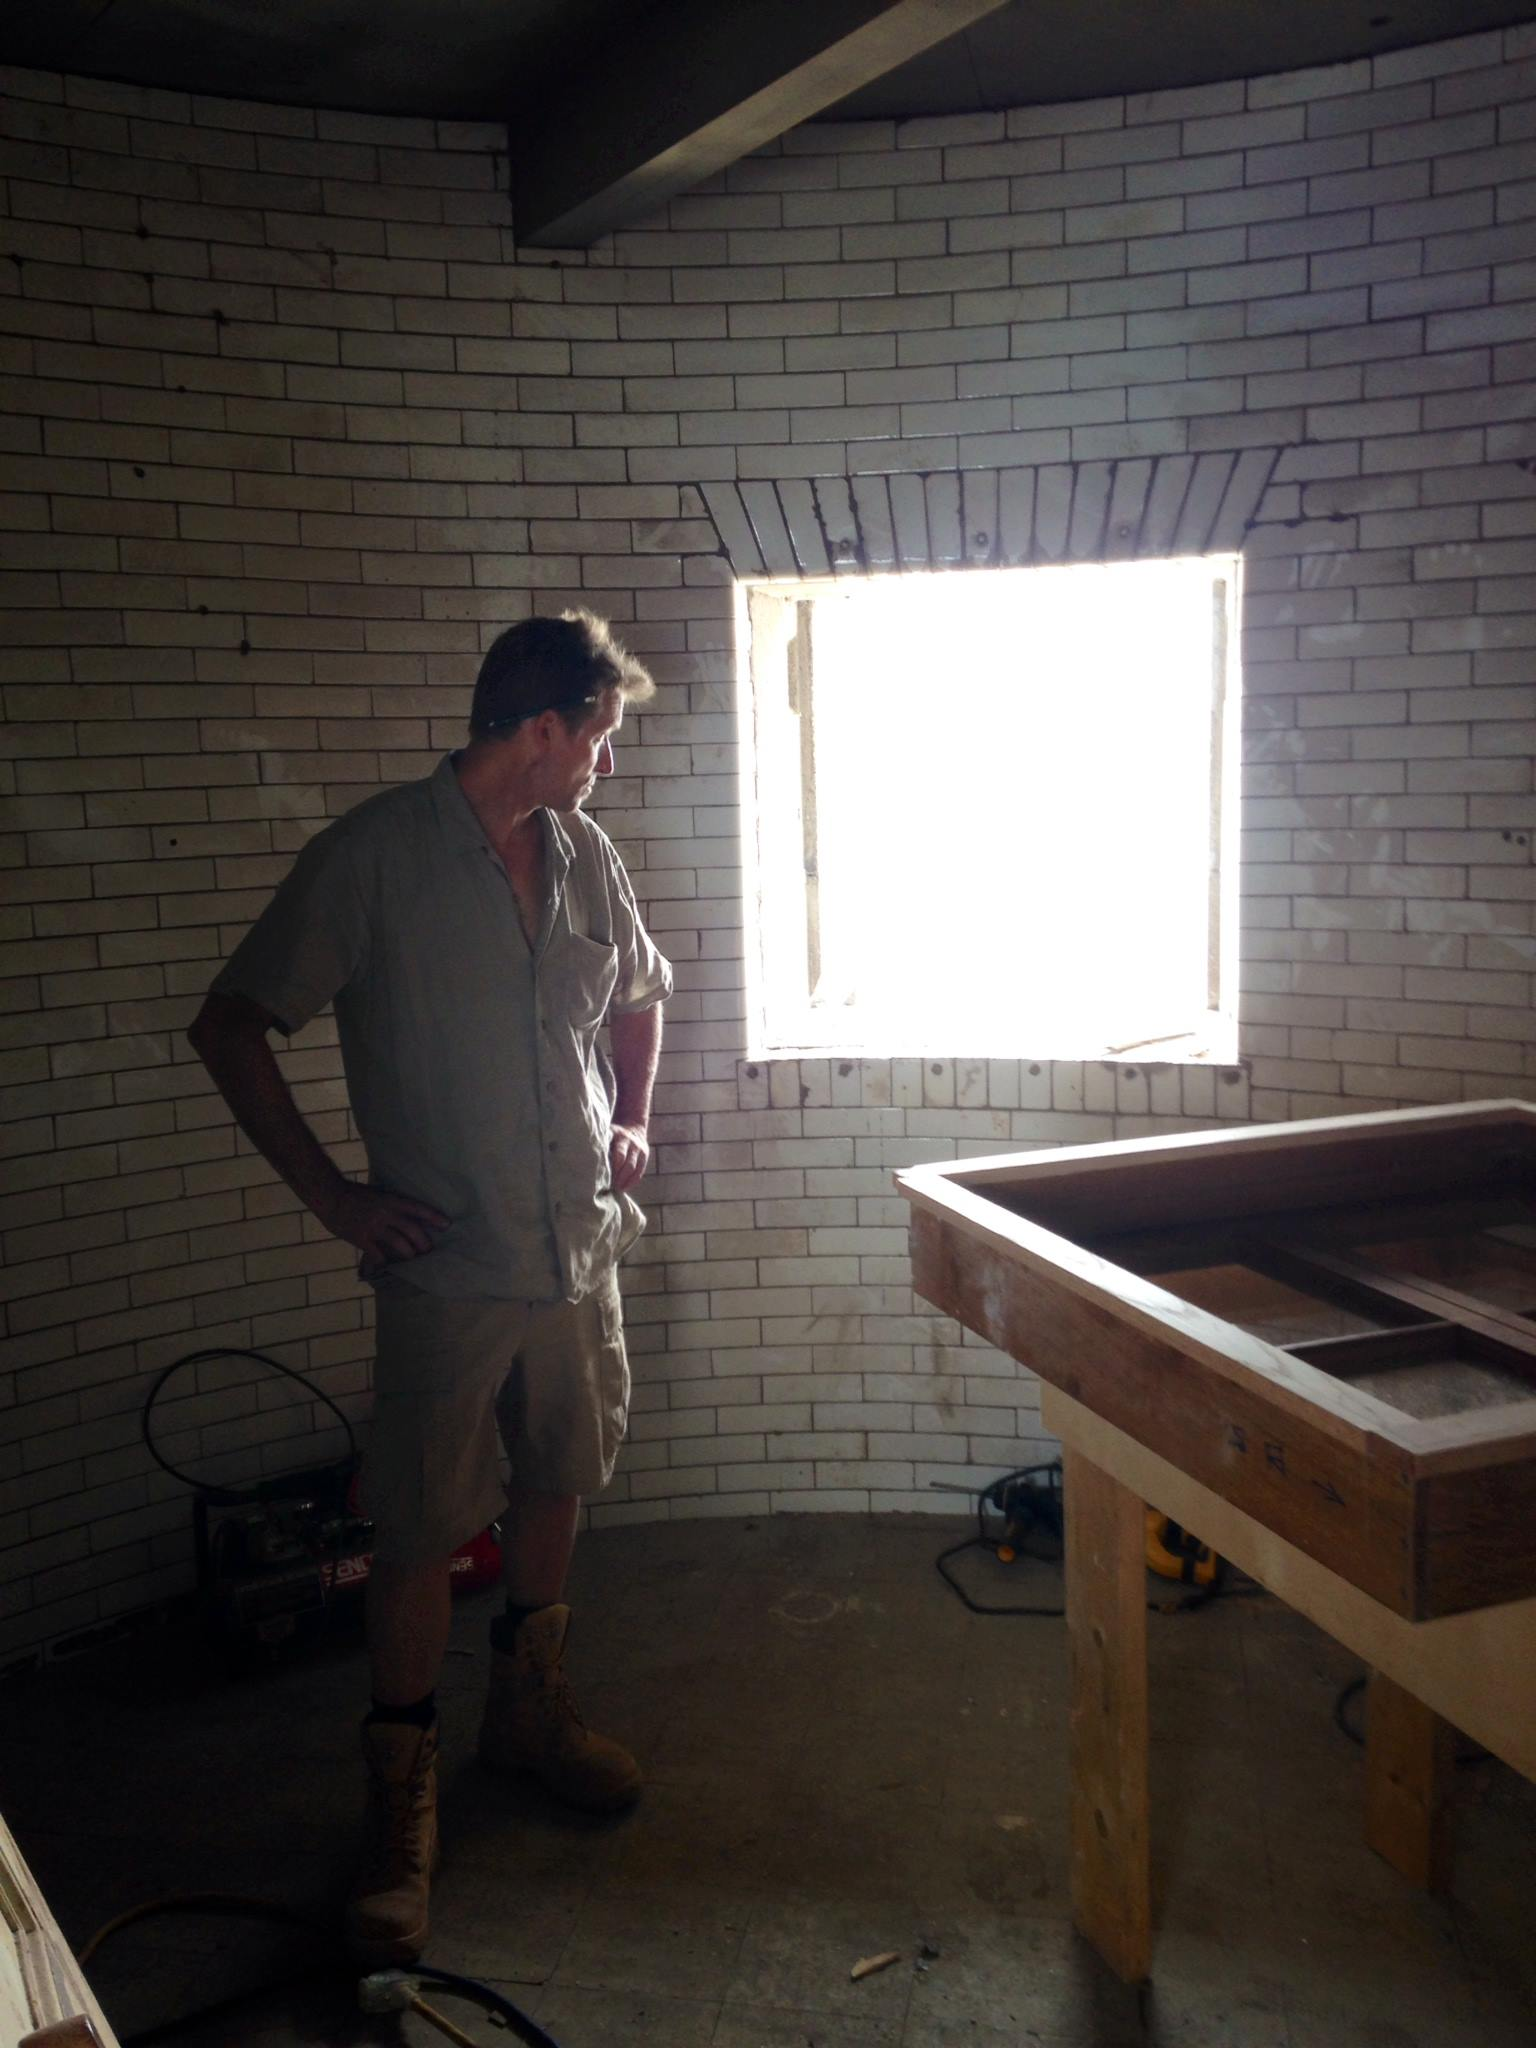 Karl Phillips of Driftwood Construction in Nantucket looks at how he's going to install the white oak casement window he built to restore the Graves Light windows to their original appearance and function.